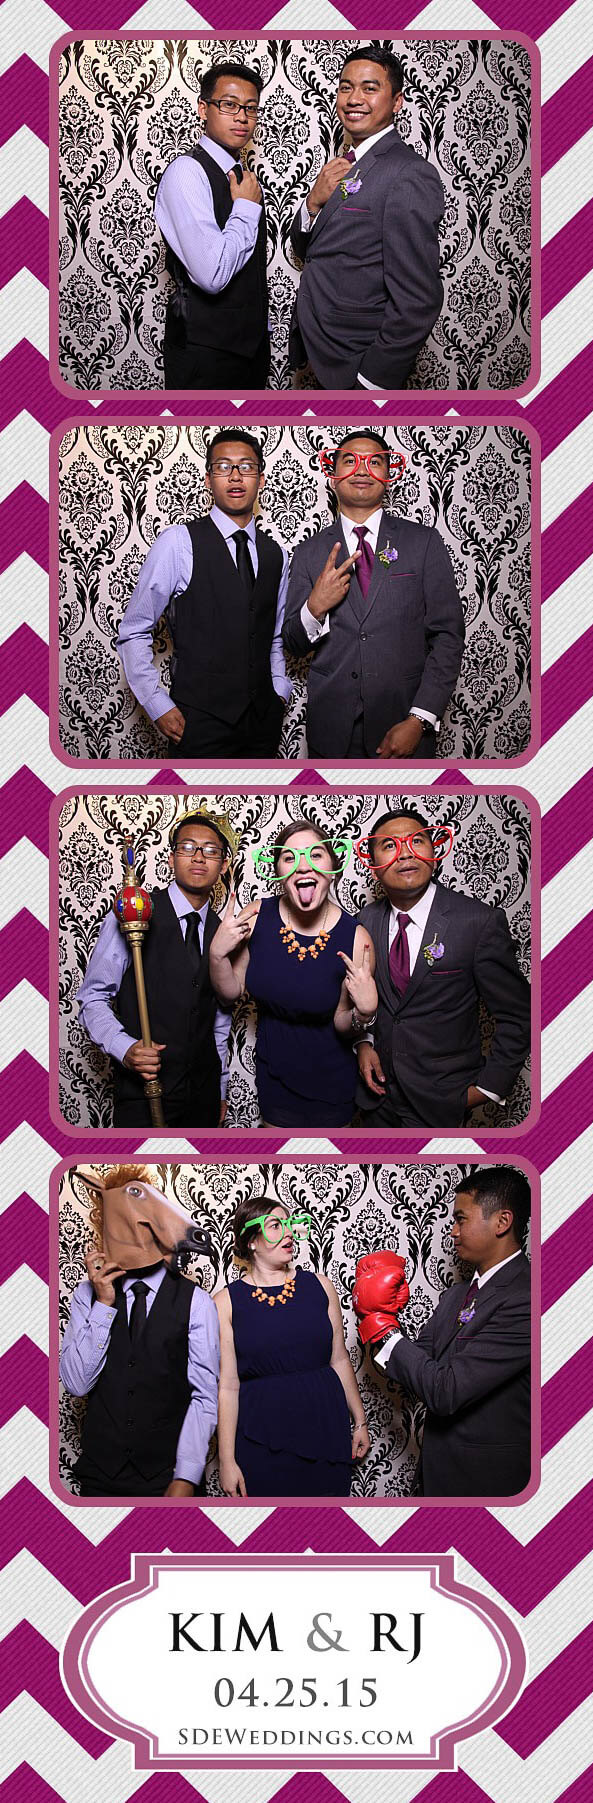 Toronto Filipino Wedding Photo Booth Rental at Teatro Conference Centre Milton 1